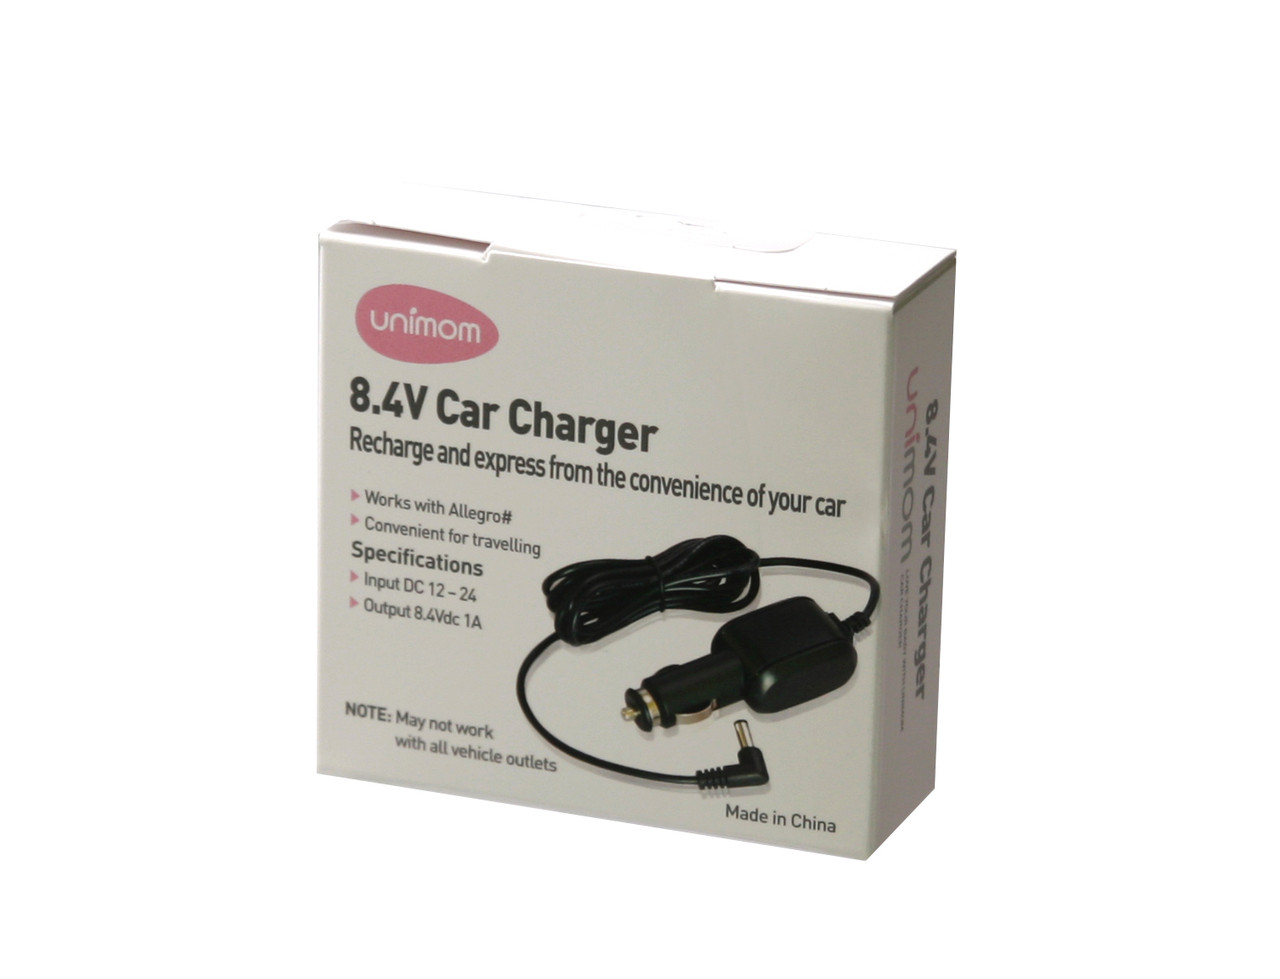 Allegro Breast Pump Car Charger